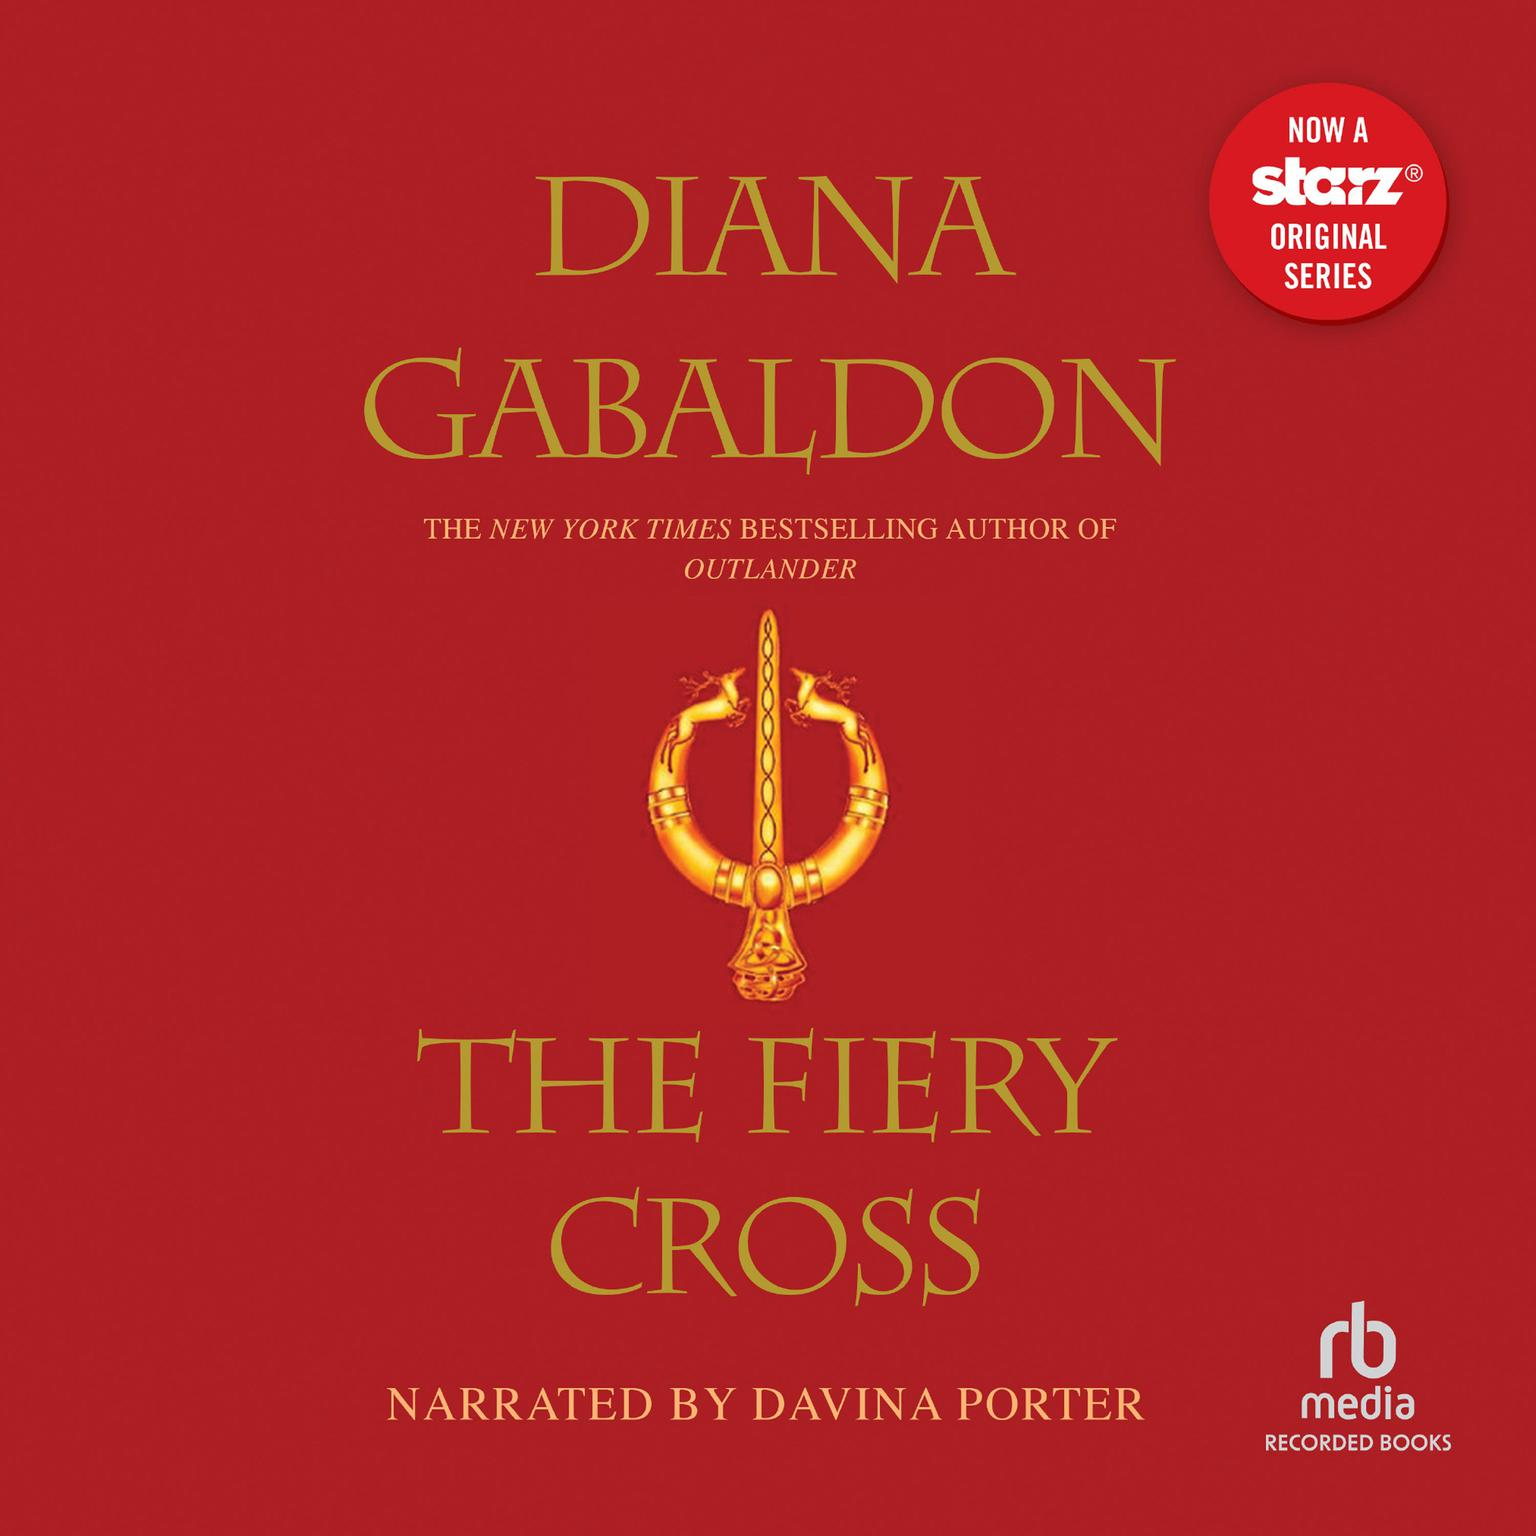 Download The Fiery Cross Audiobook By Diana Gabaldon For